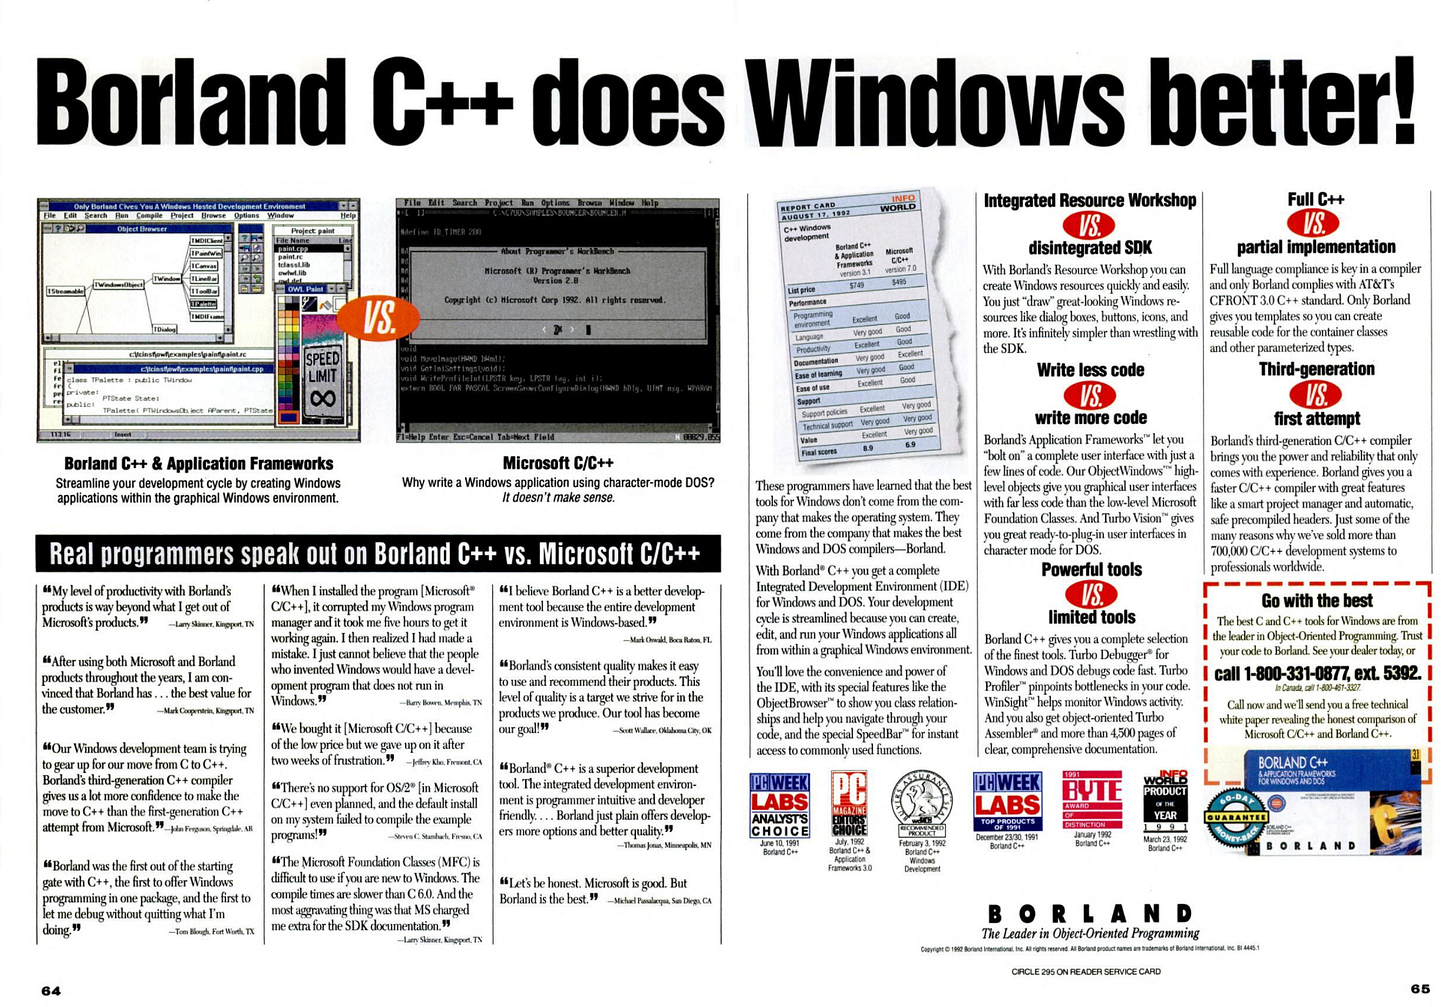 Two page advertisement: Borland C++ does Windows better.